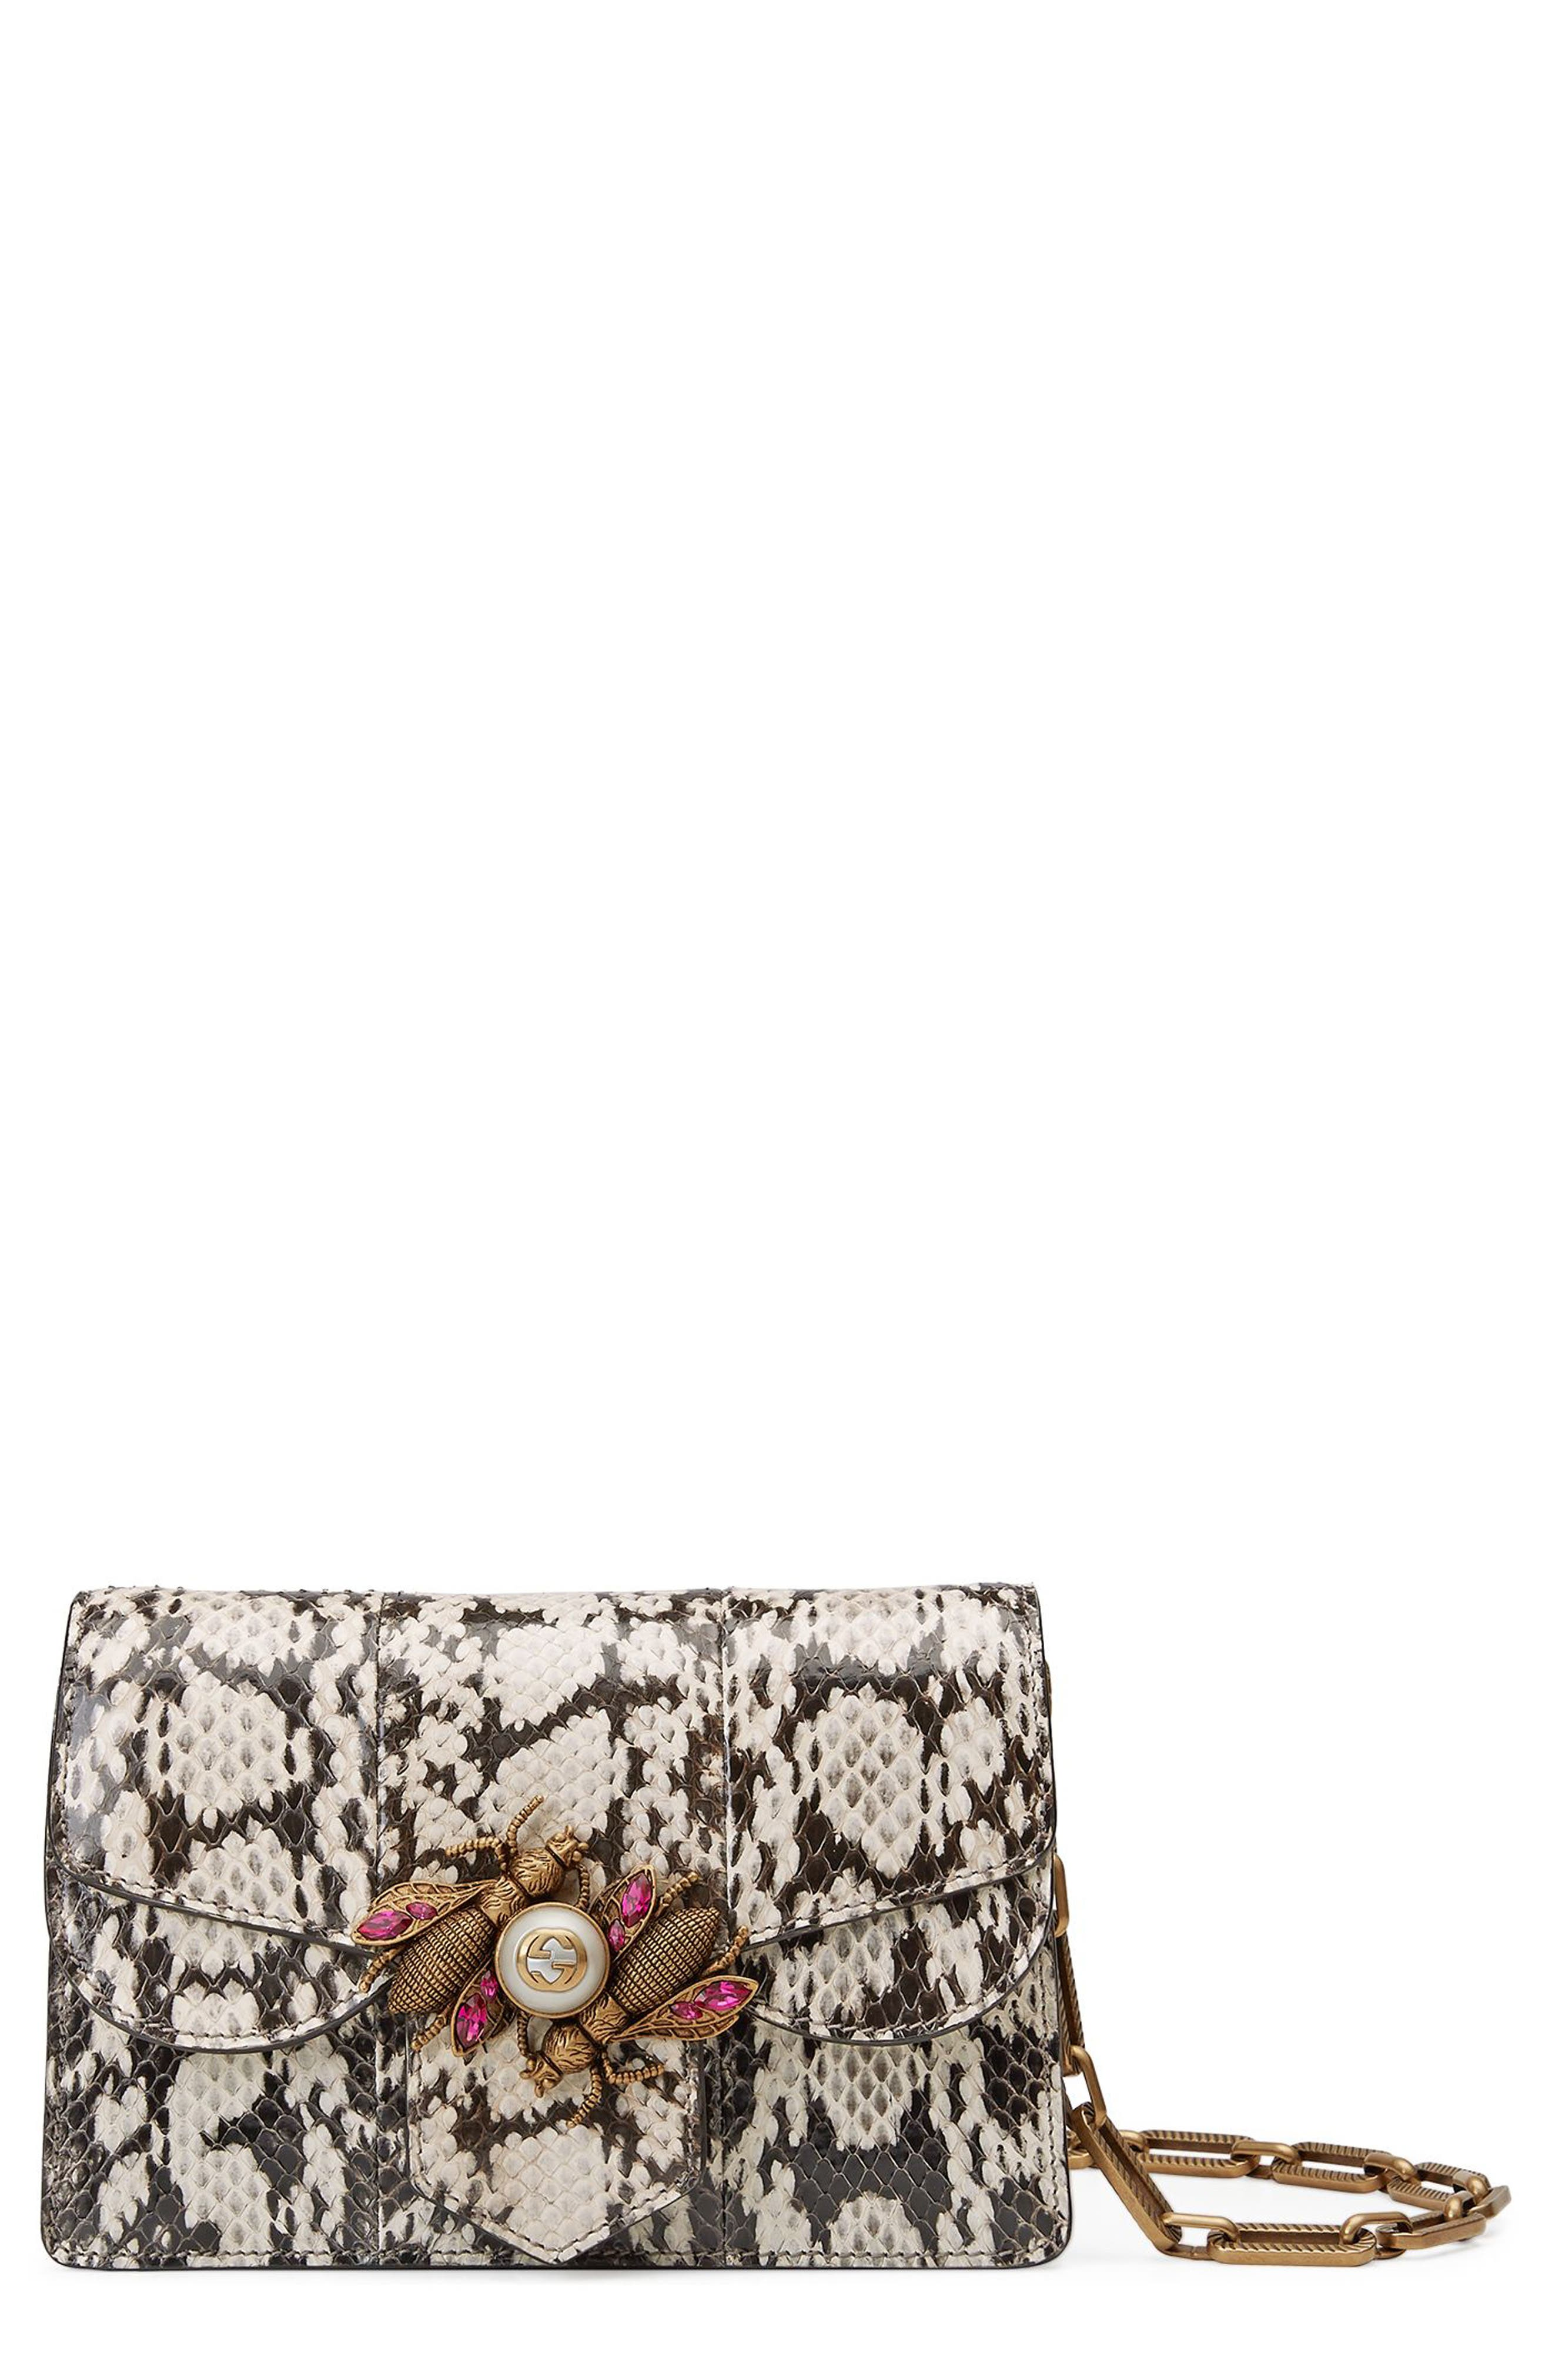 Main Image - Gucci Mini Broadway Bee Genuine Snakeskin Shoulder Bag